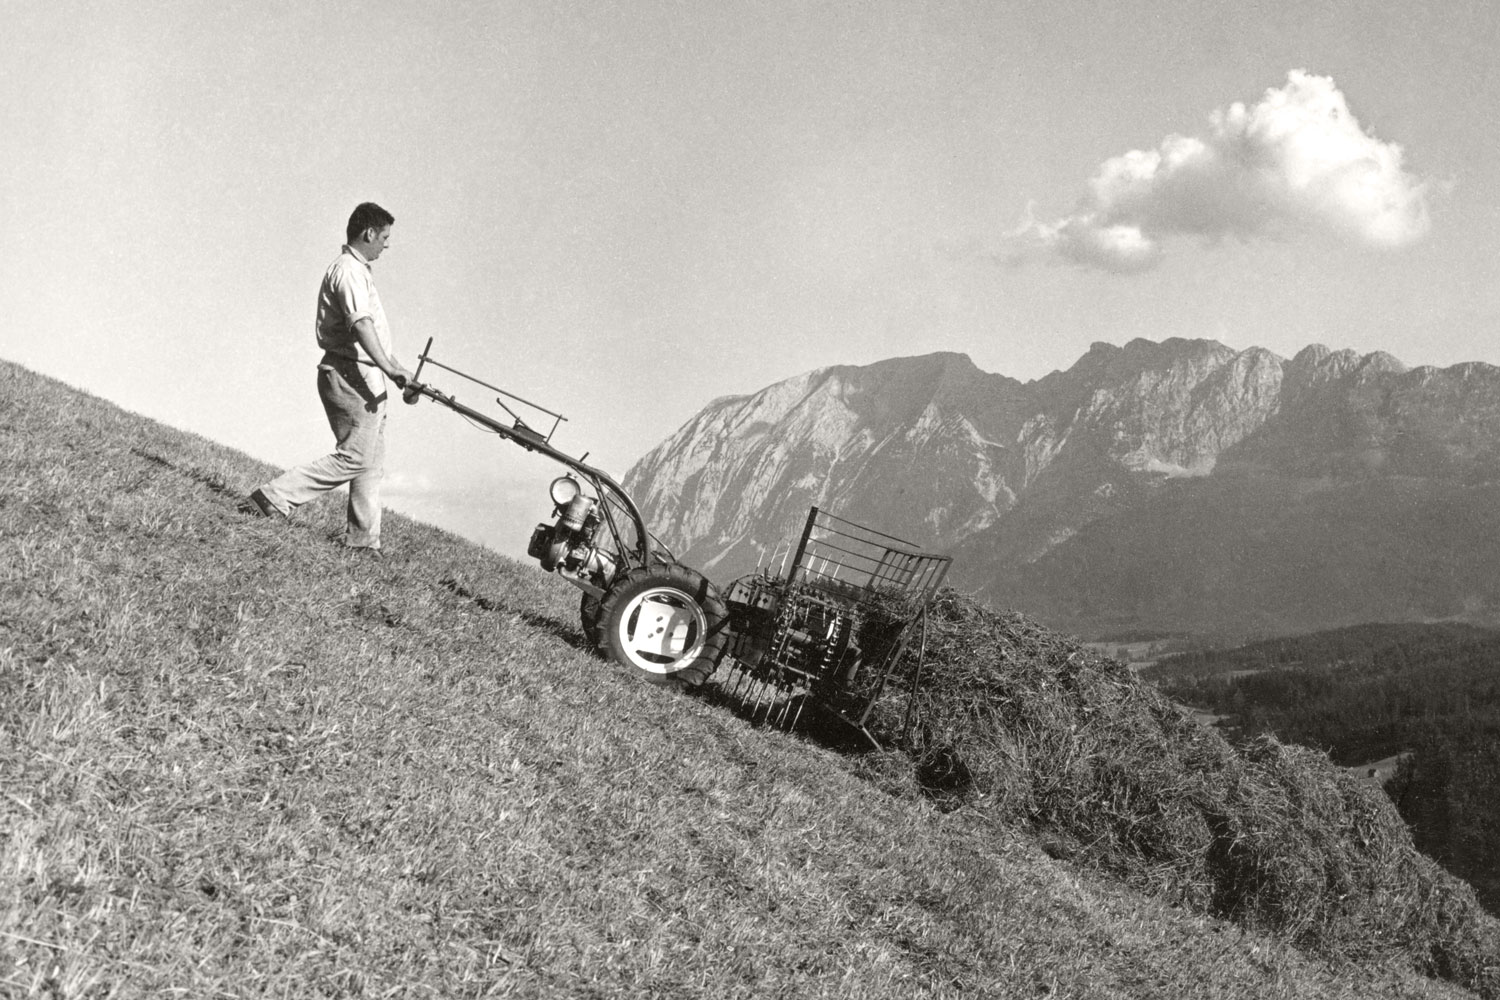 Specialist on steep slopes: The PÖTTINGER conveyor rake in a challenging but beautiful workplace in the Alps.